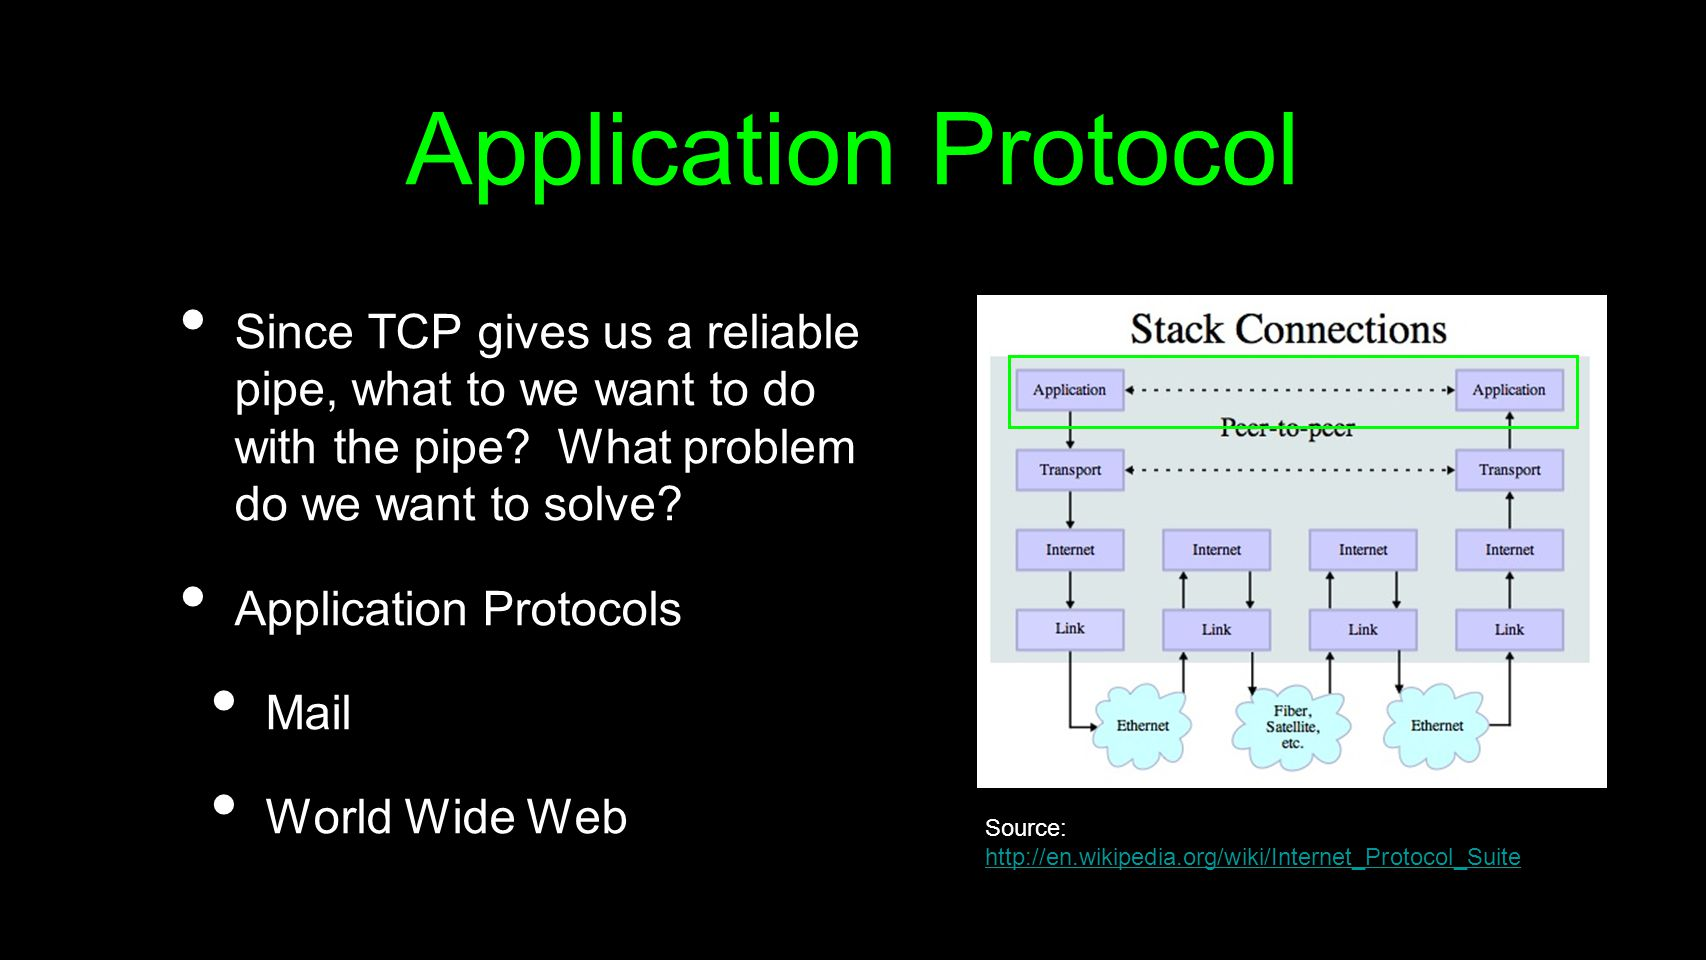 Application Protocol Since TCP gives us a reliable pipe, what to we want to do with the pipe? What problem do we want to solve? Application Protocols